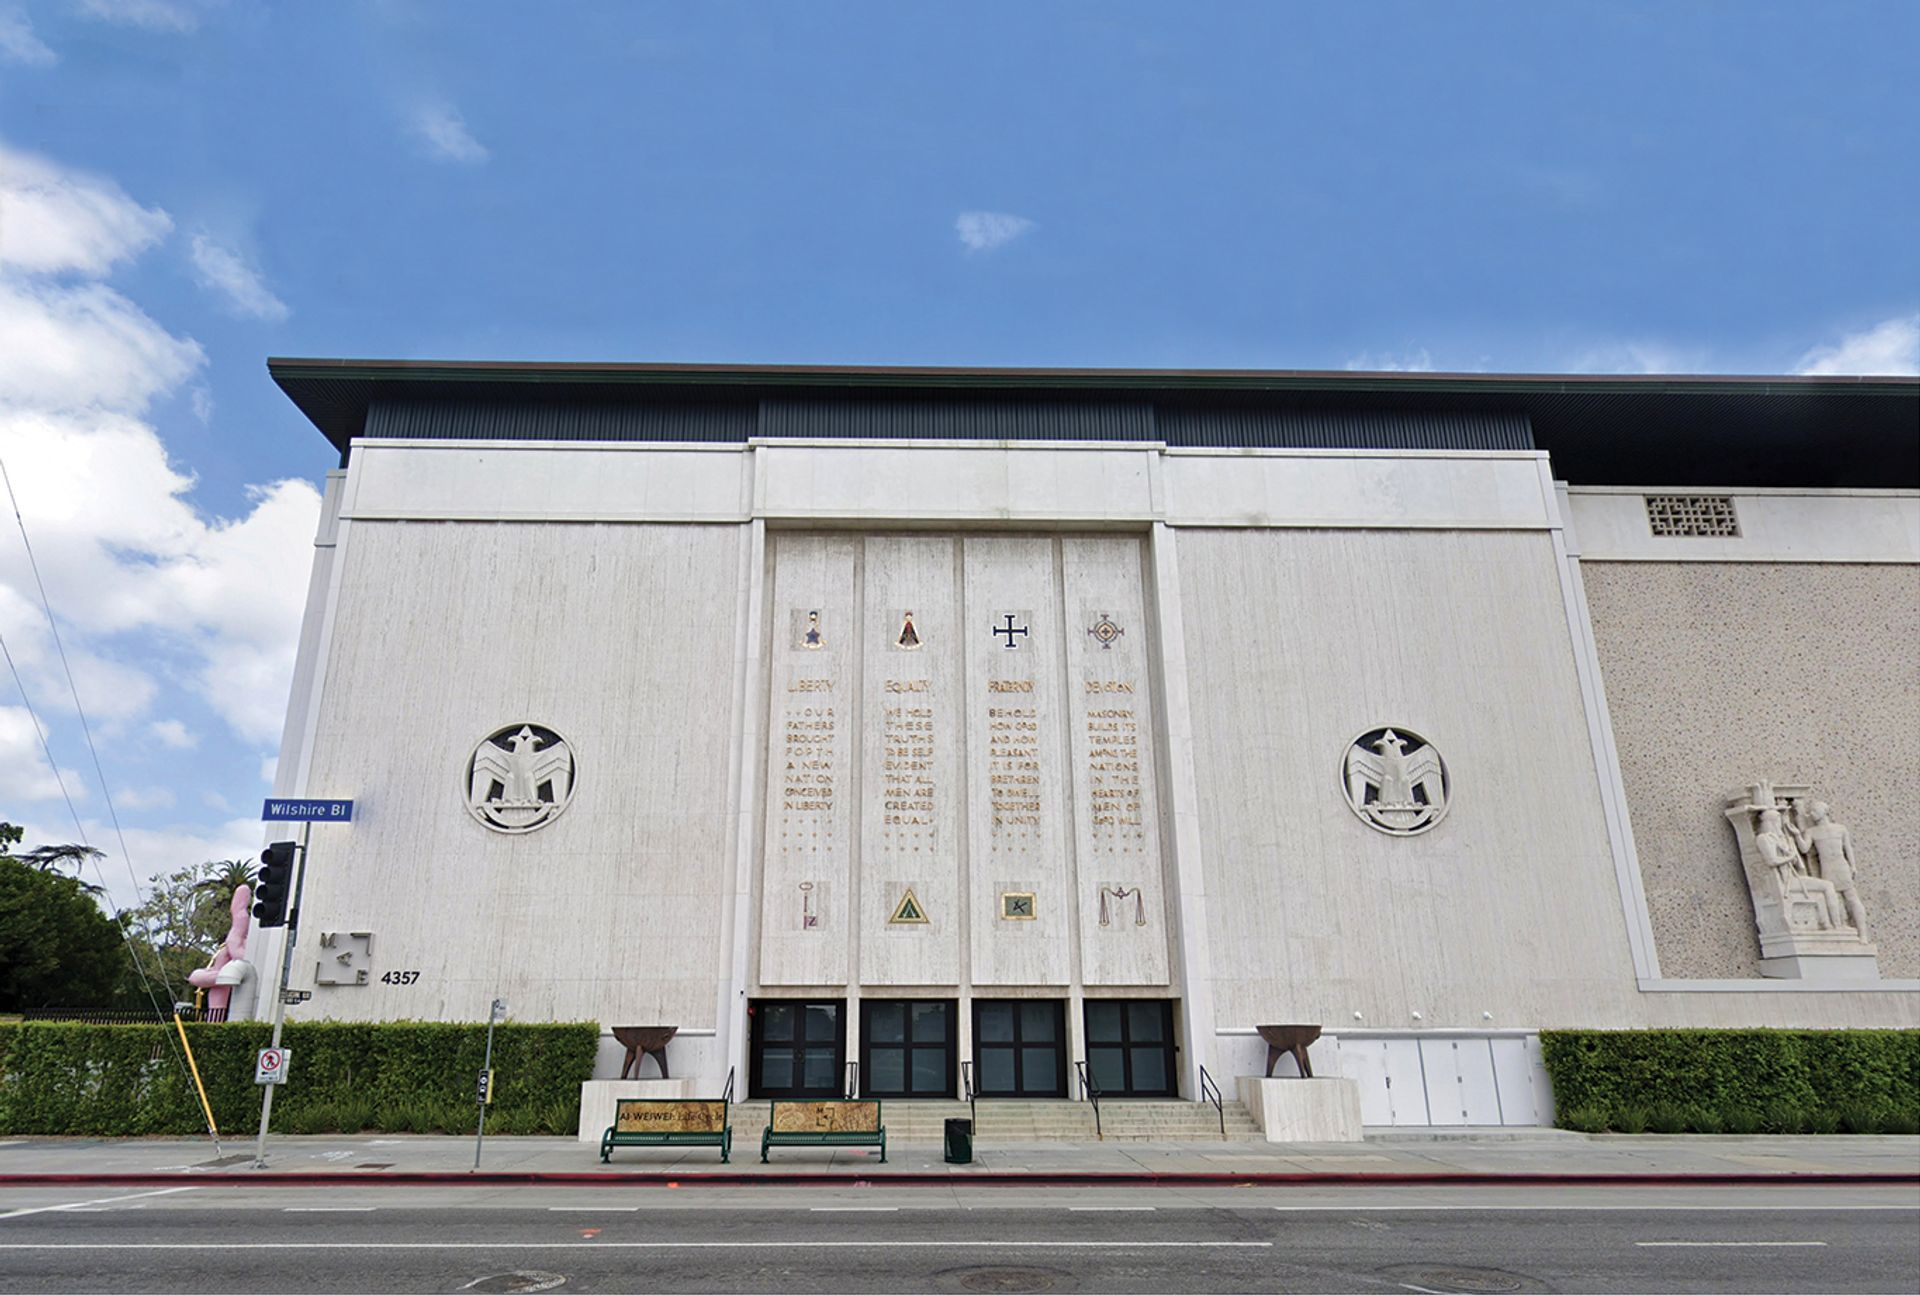 Closed: The Marciano Art Foundation, housed in a former Scottish Rite Masonic Temple on Wilshire Boulevard in Los Angeles